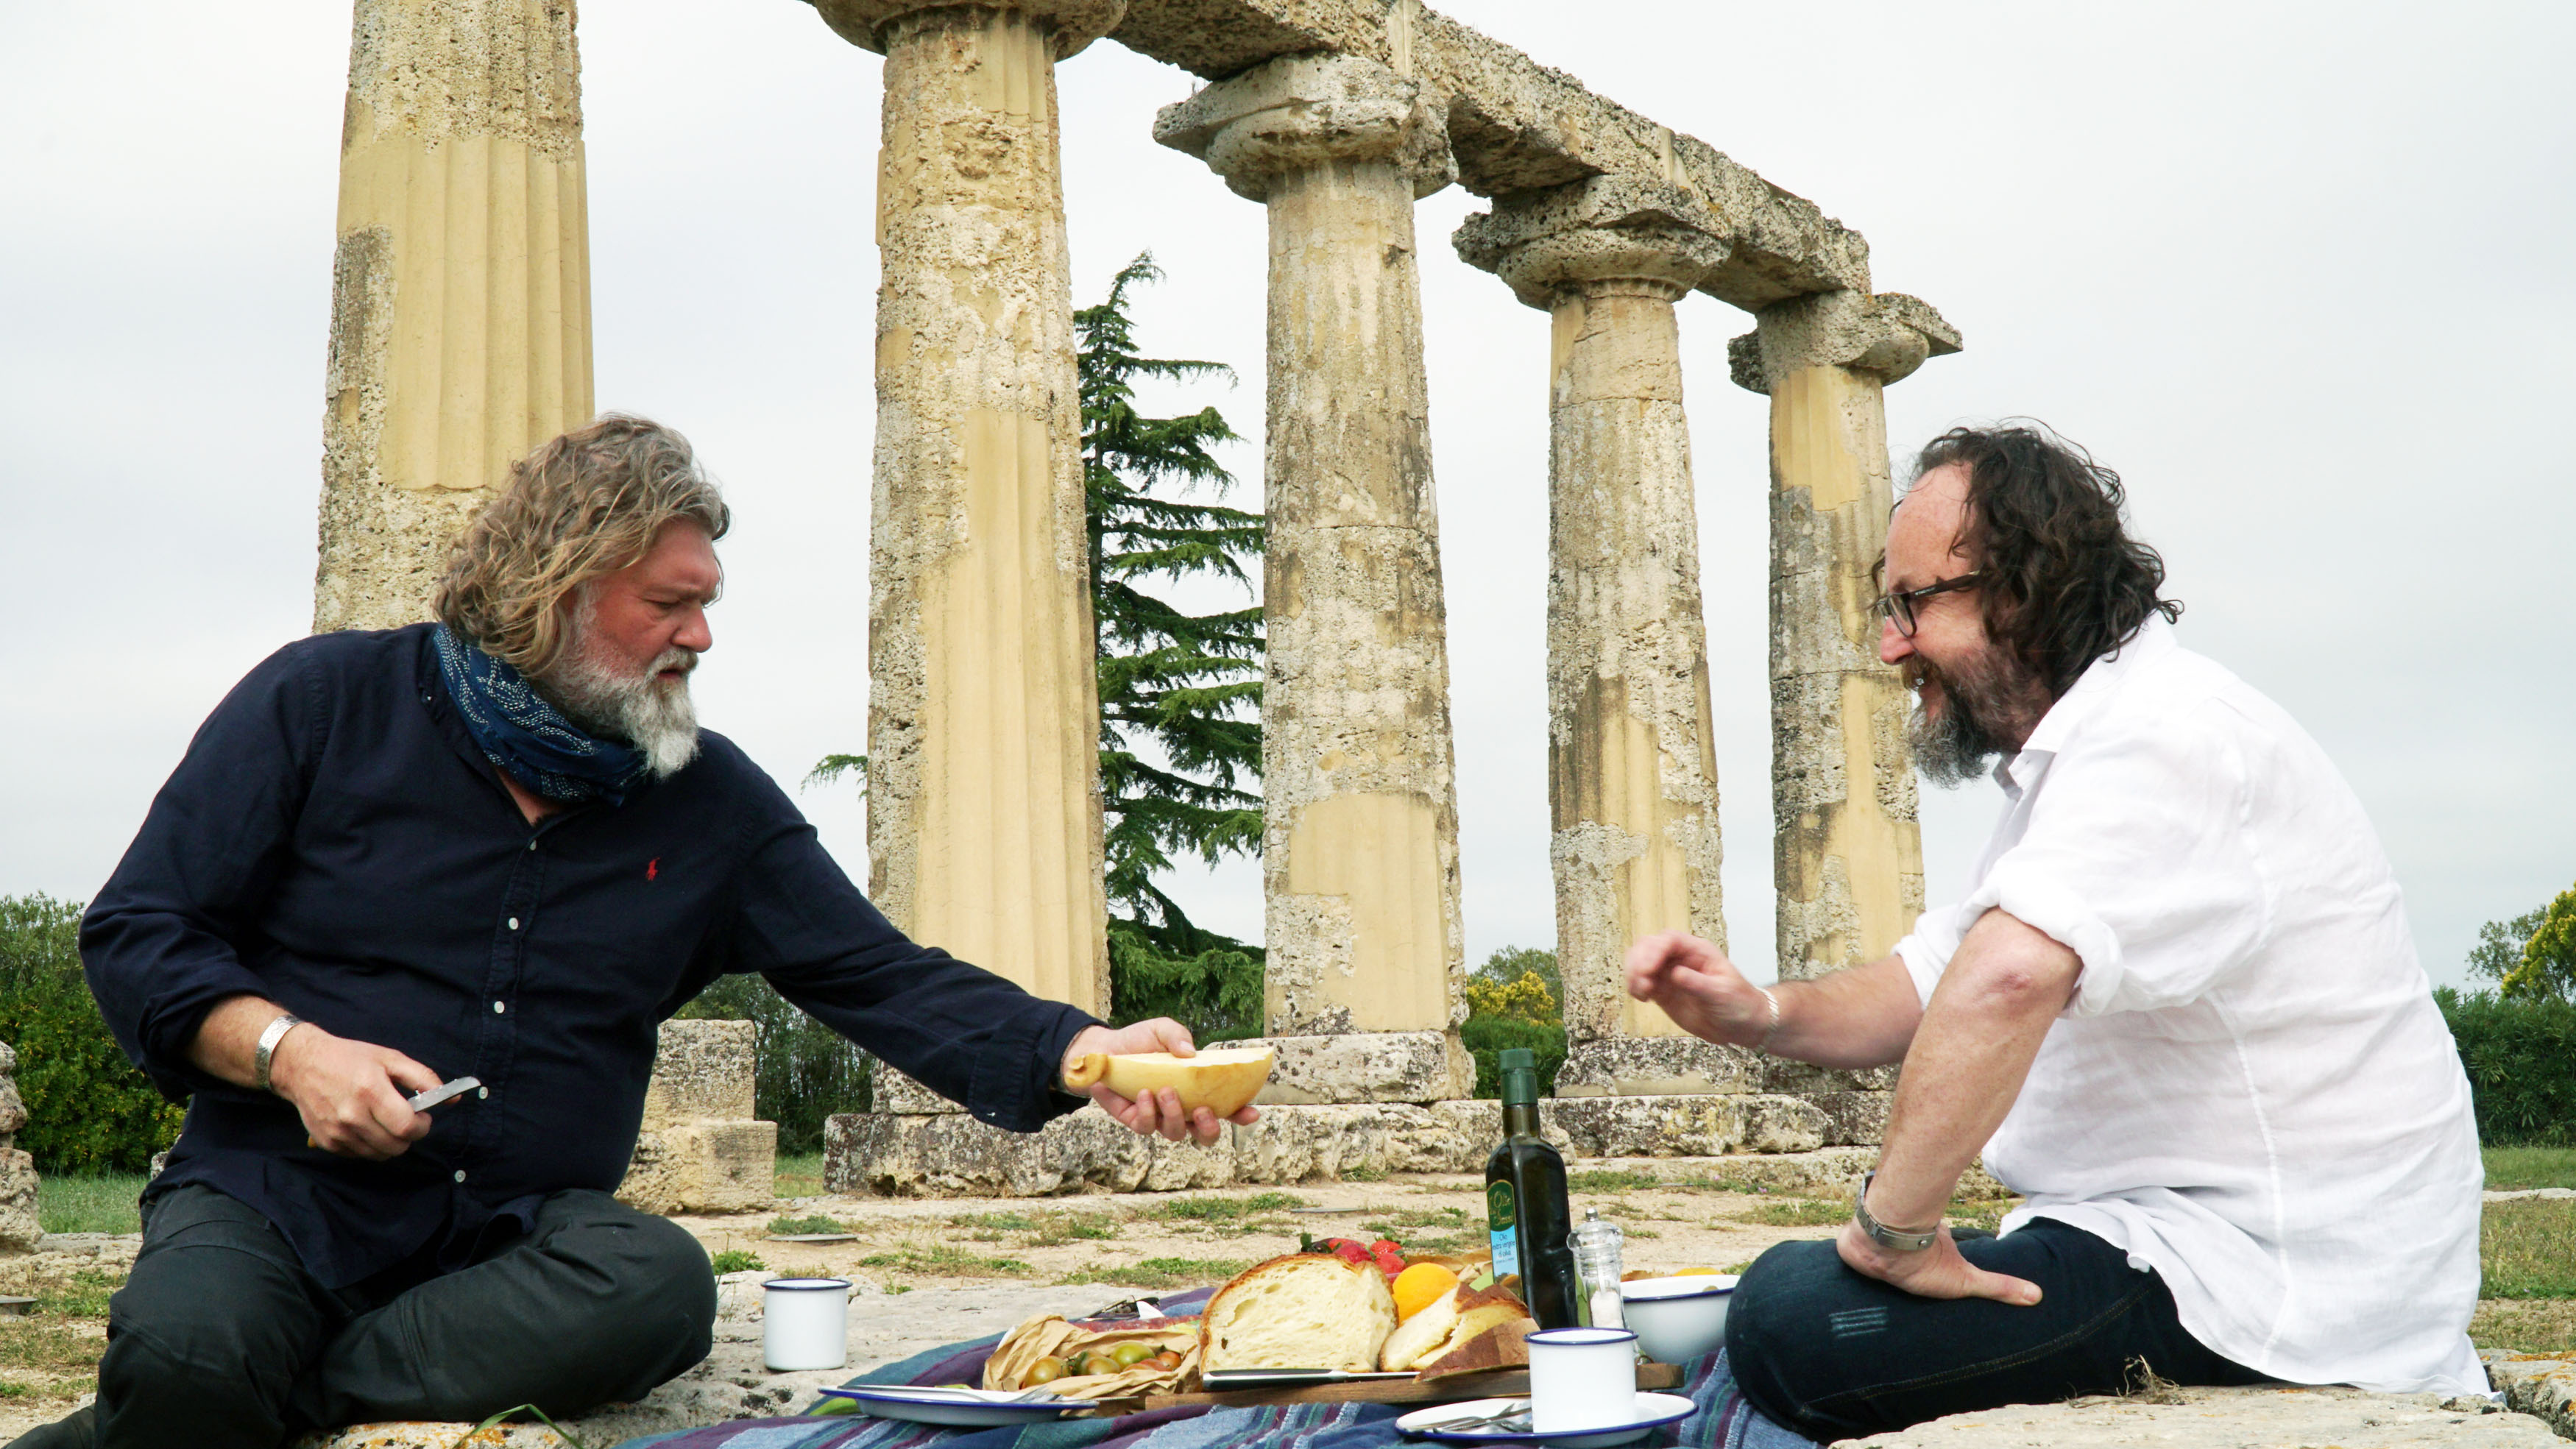 Picnicking at a historical site in Metaponto, Italy